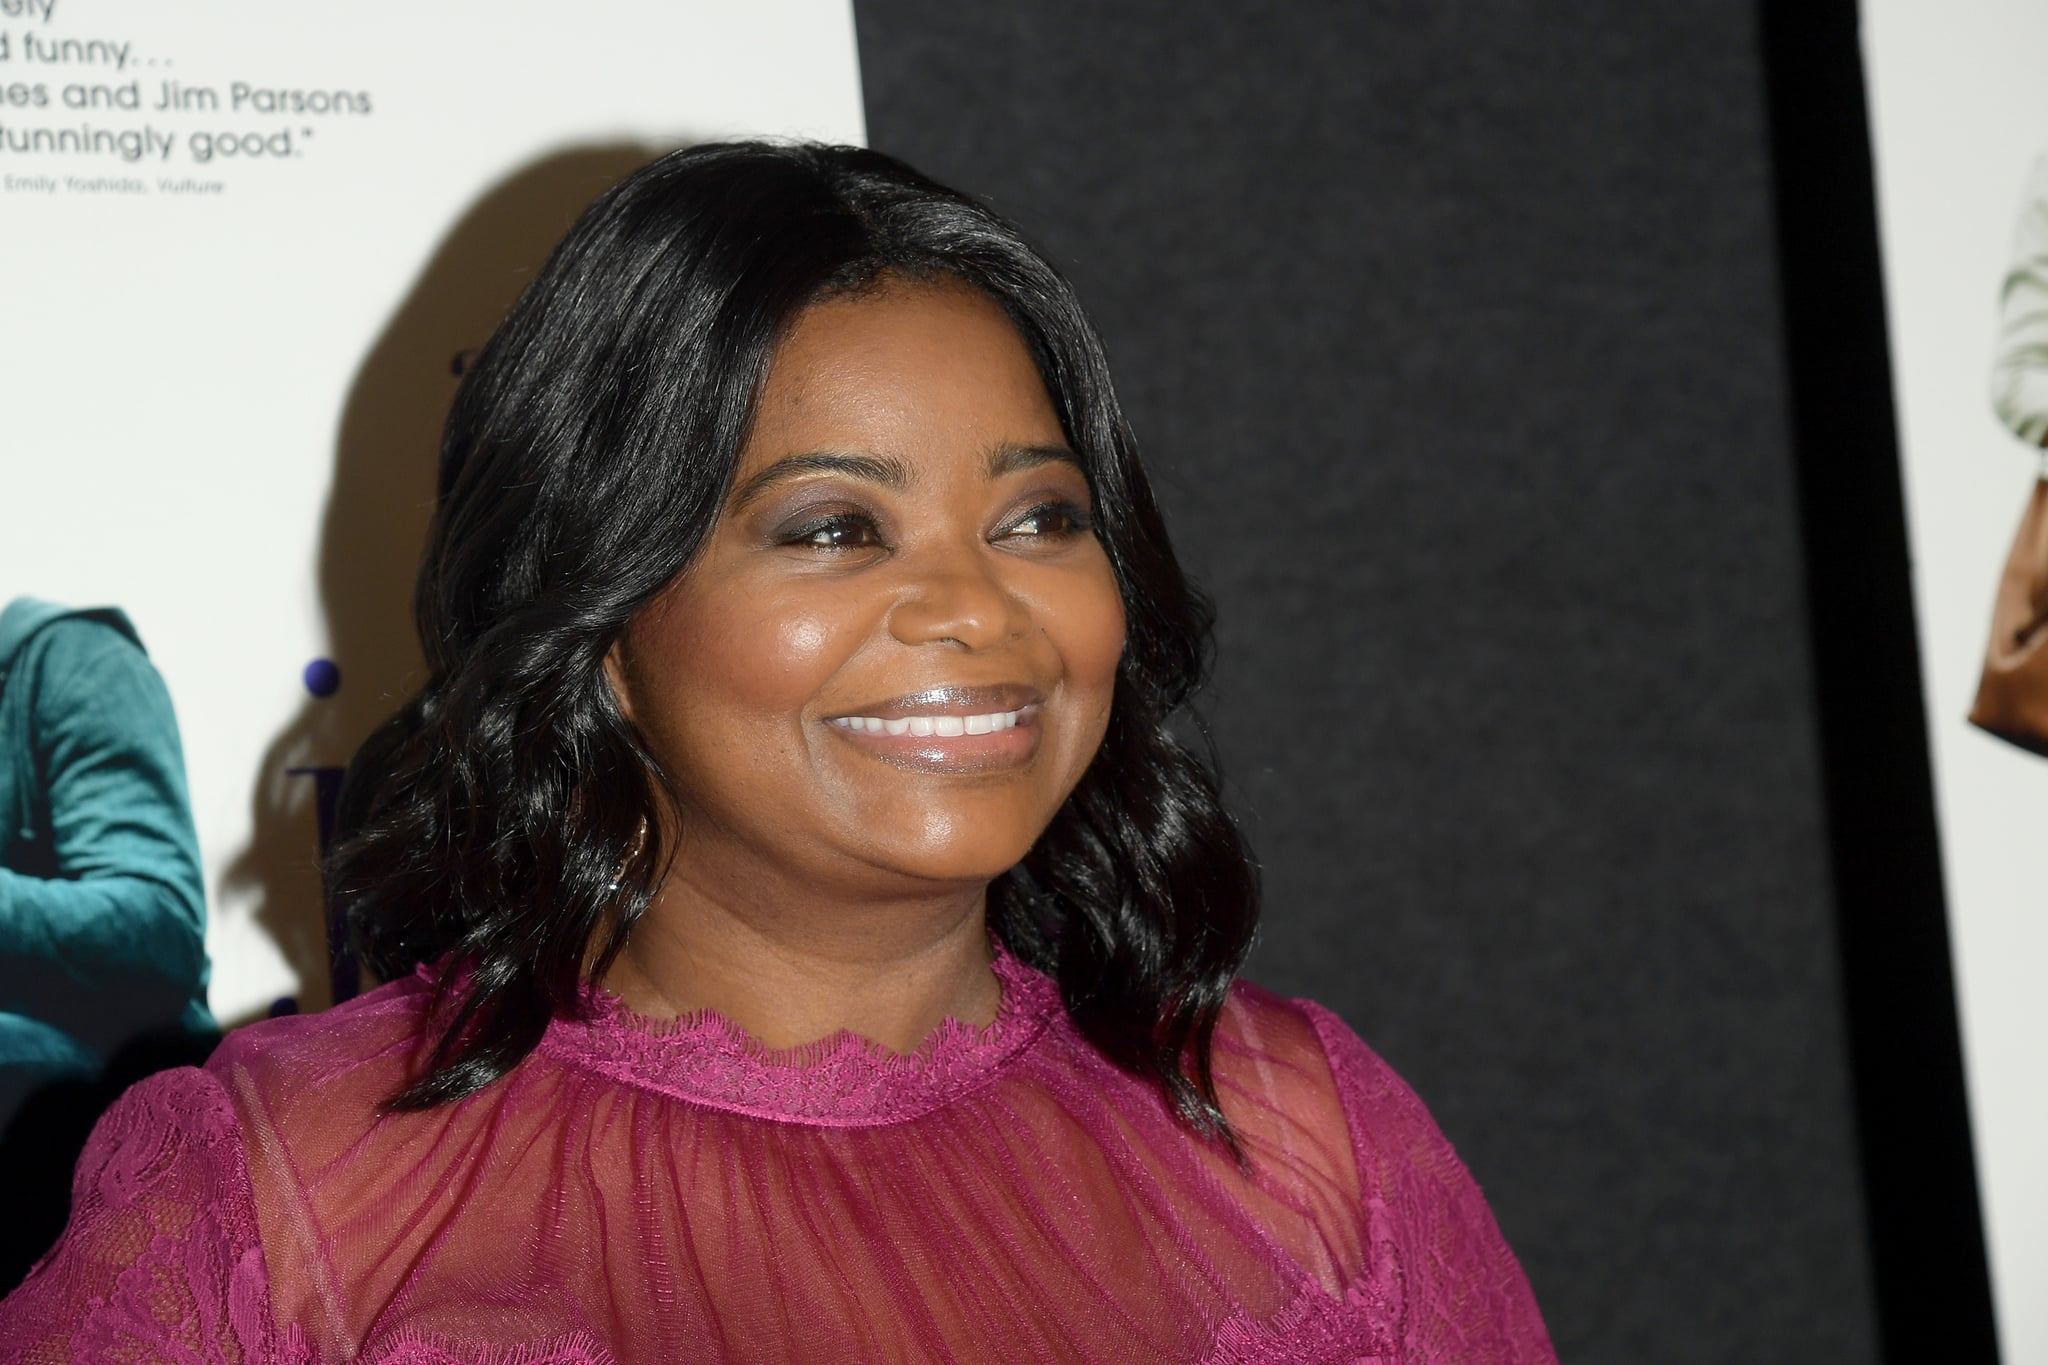 NEW YORK, NY - MAY 21:  Actress Octavia Spencer attends the A Kid Like Jake New York Premiere at The Landmark at 57 West on May 21, 2018 in New York City.  (Photo by Ben Gabbe/Getty Images)